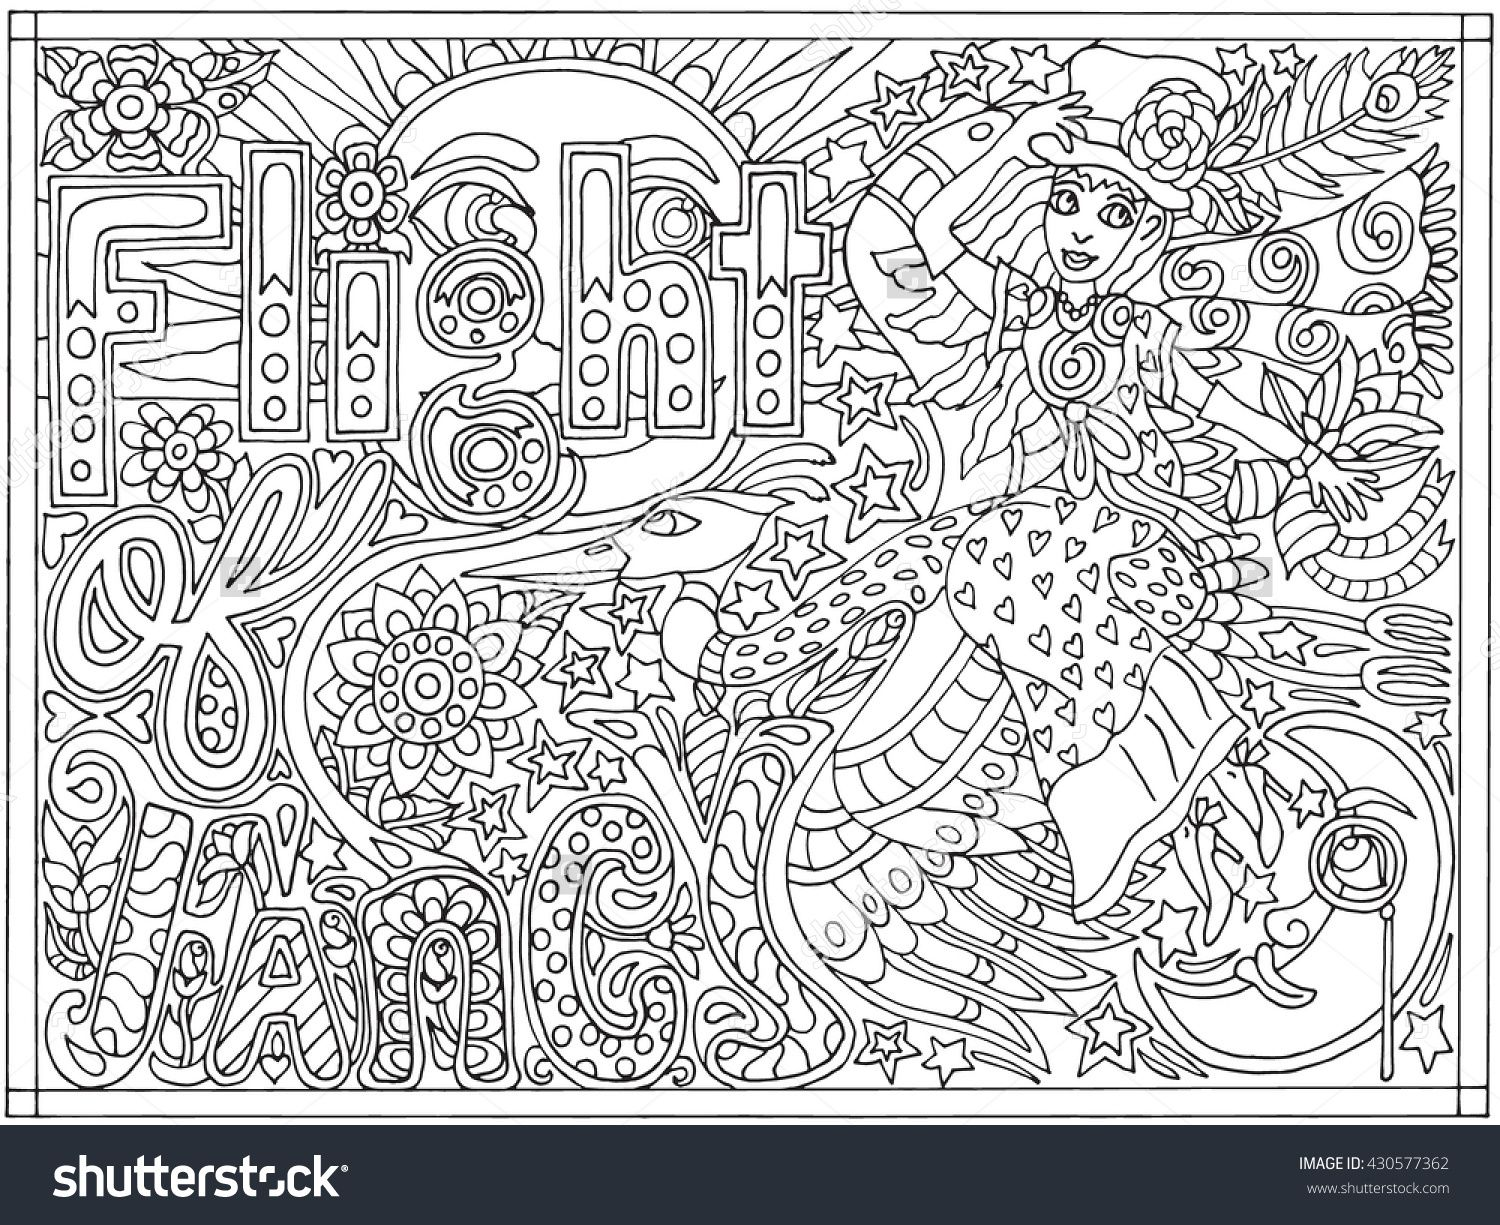 The coloring book poster - Adult Coloring Book Poster Page Flight Of Fancy Black And White Vector Illustration